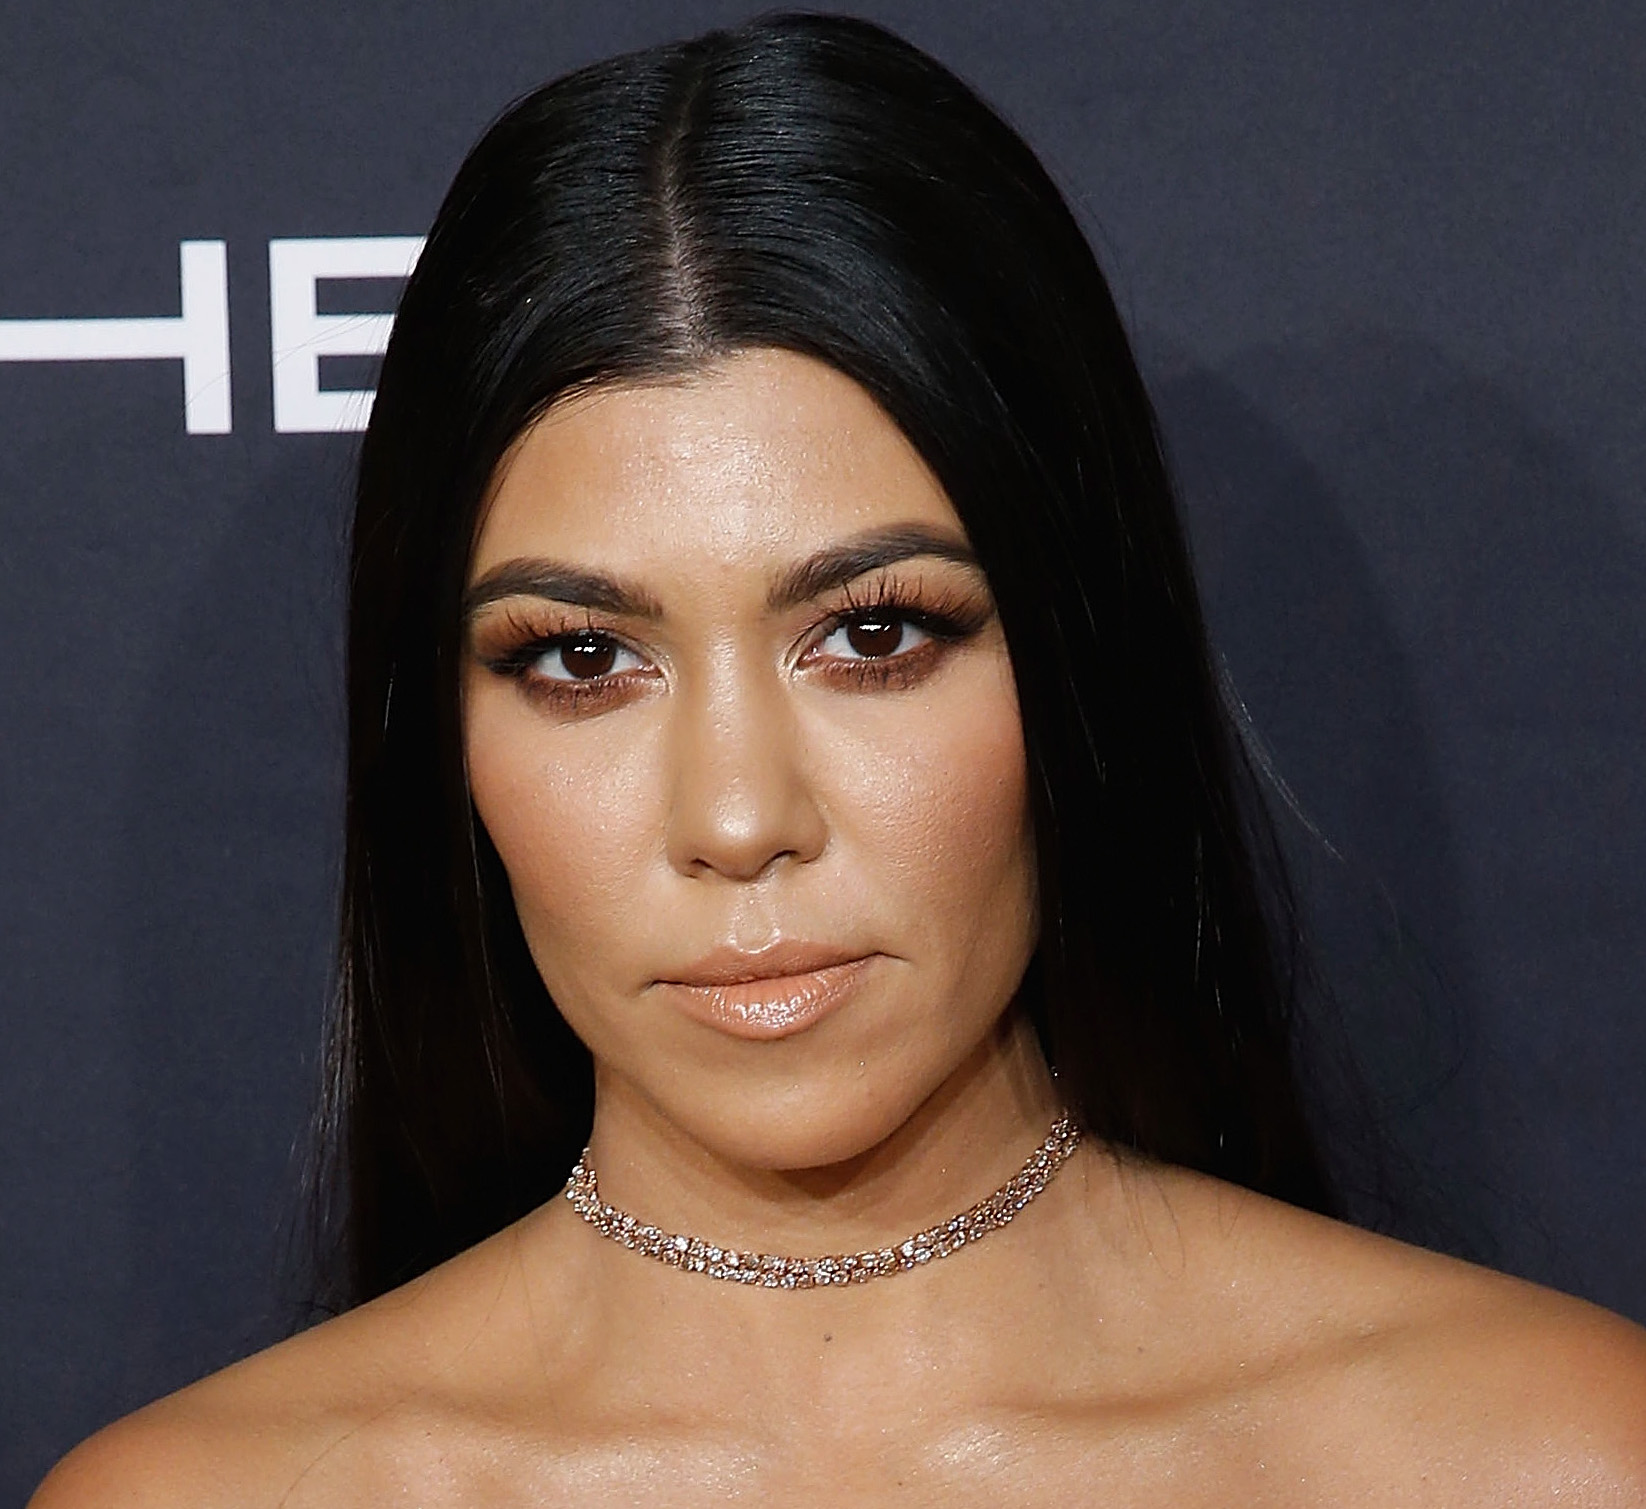 Kourtney Kardashian proves that the body chain is THE ultimate swimsuit accessory